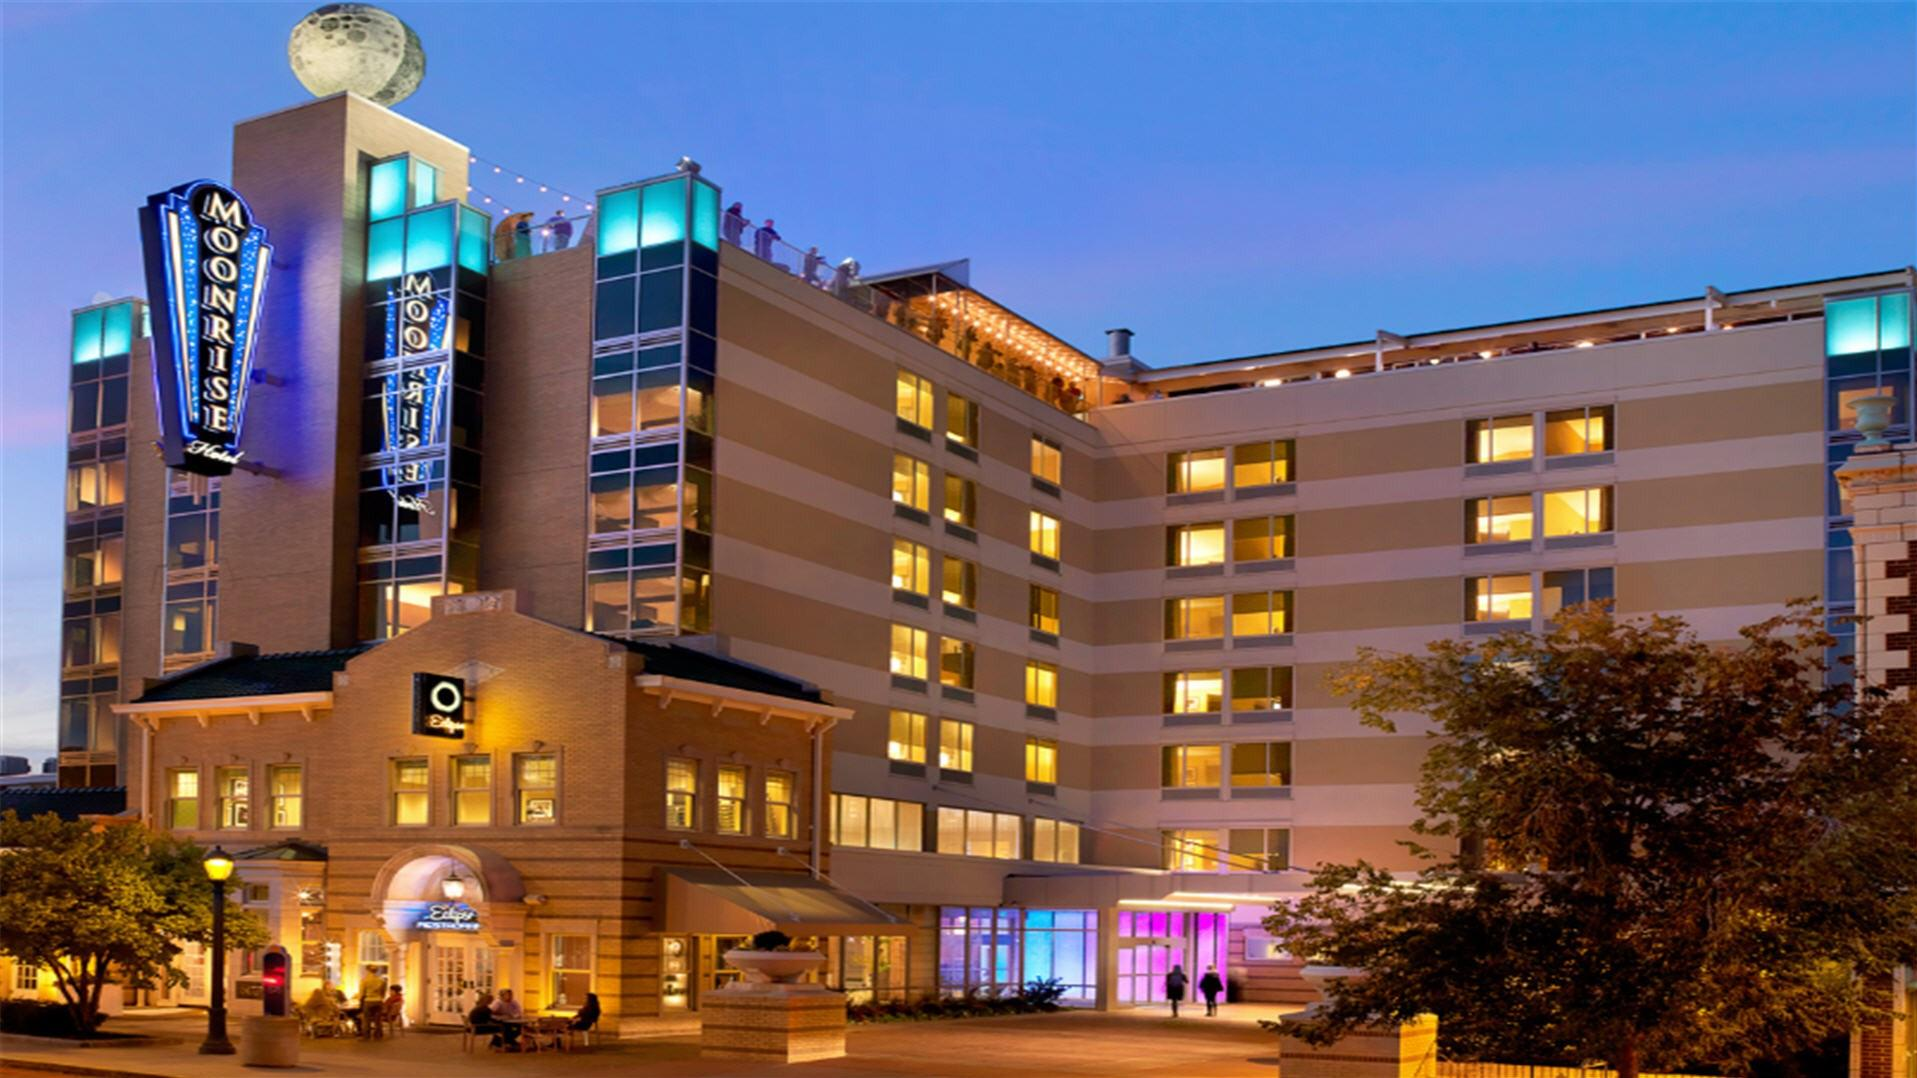 Meetings and Events at The Moonrise Hotel, St. Louis, MO, US